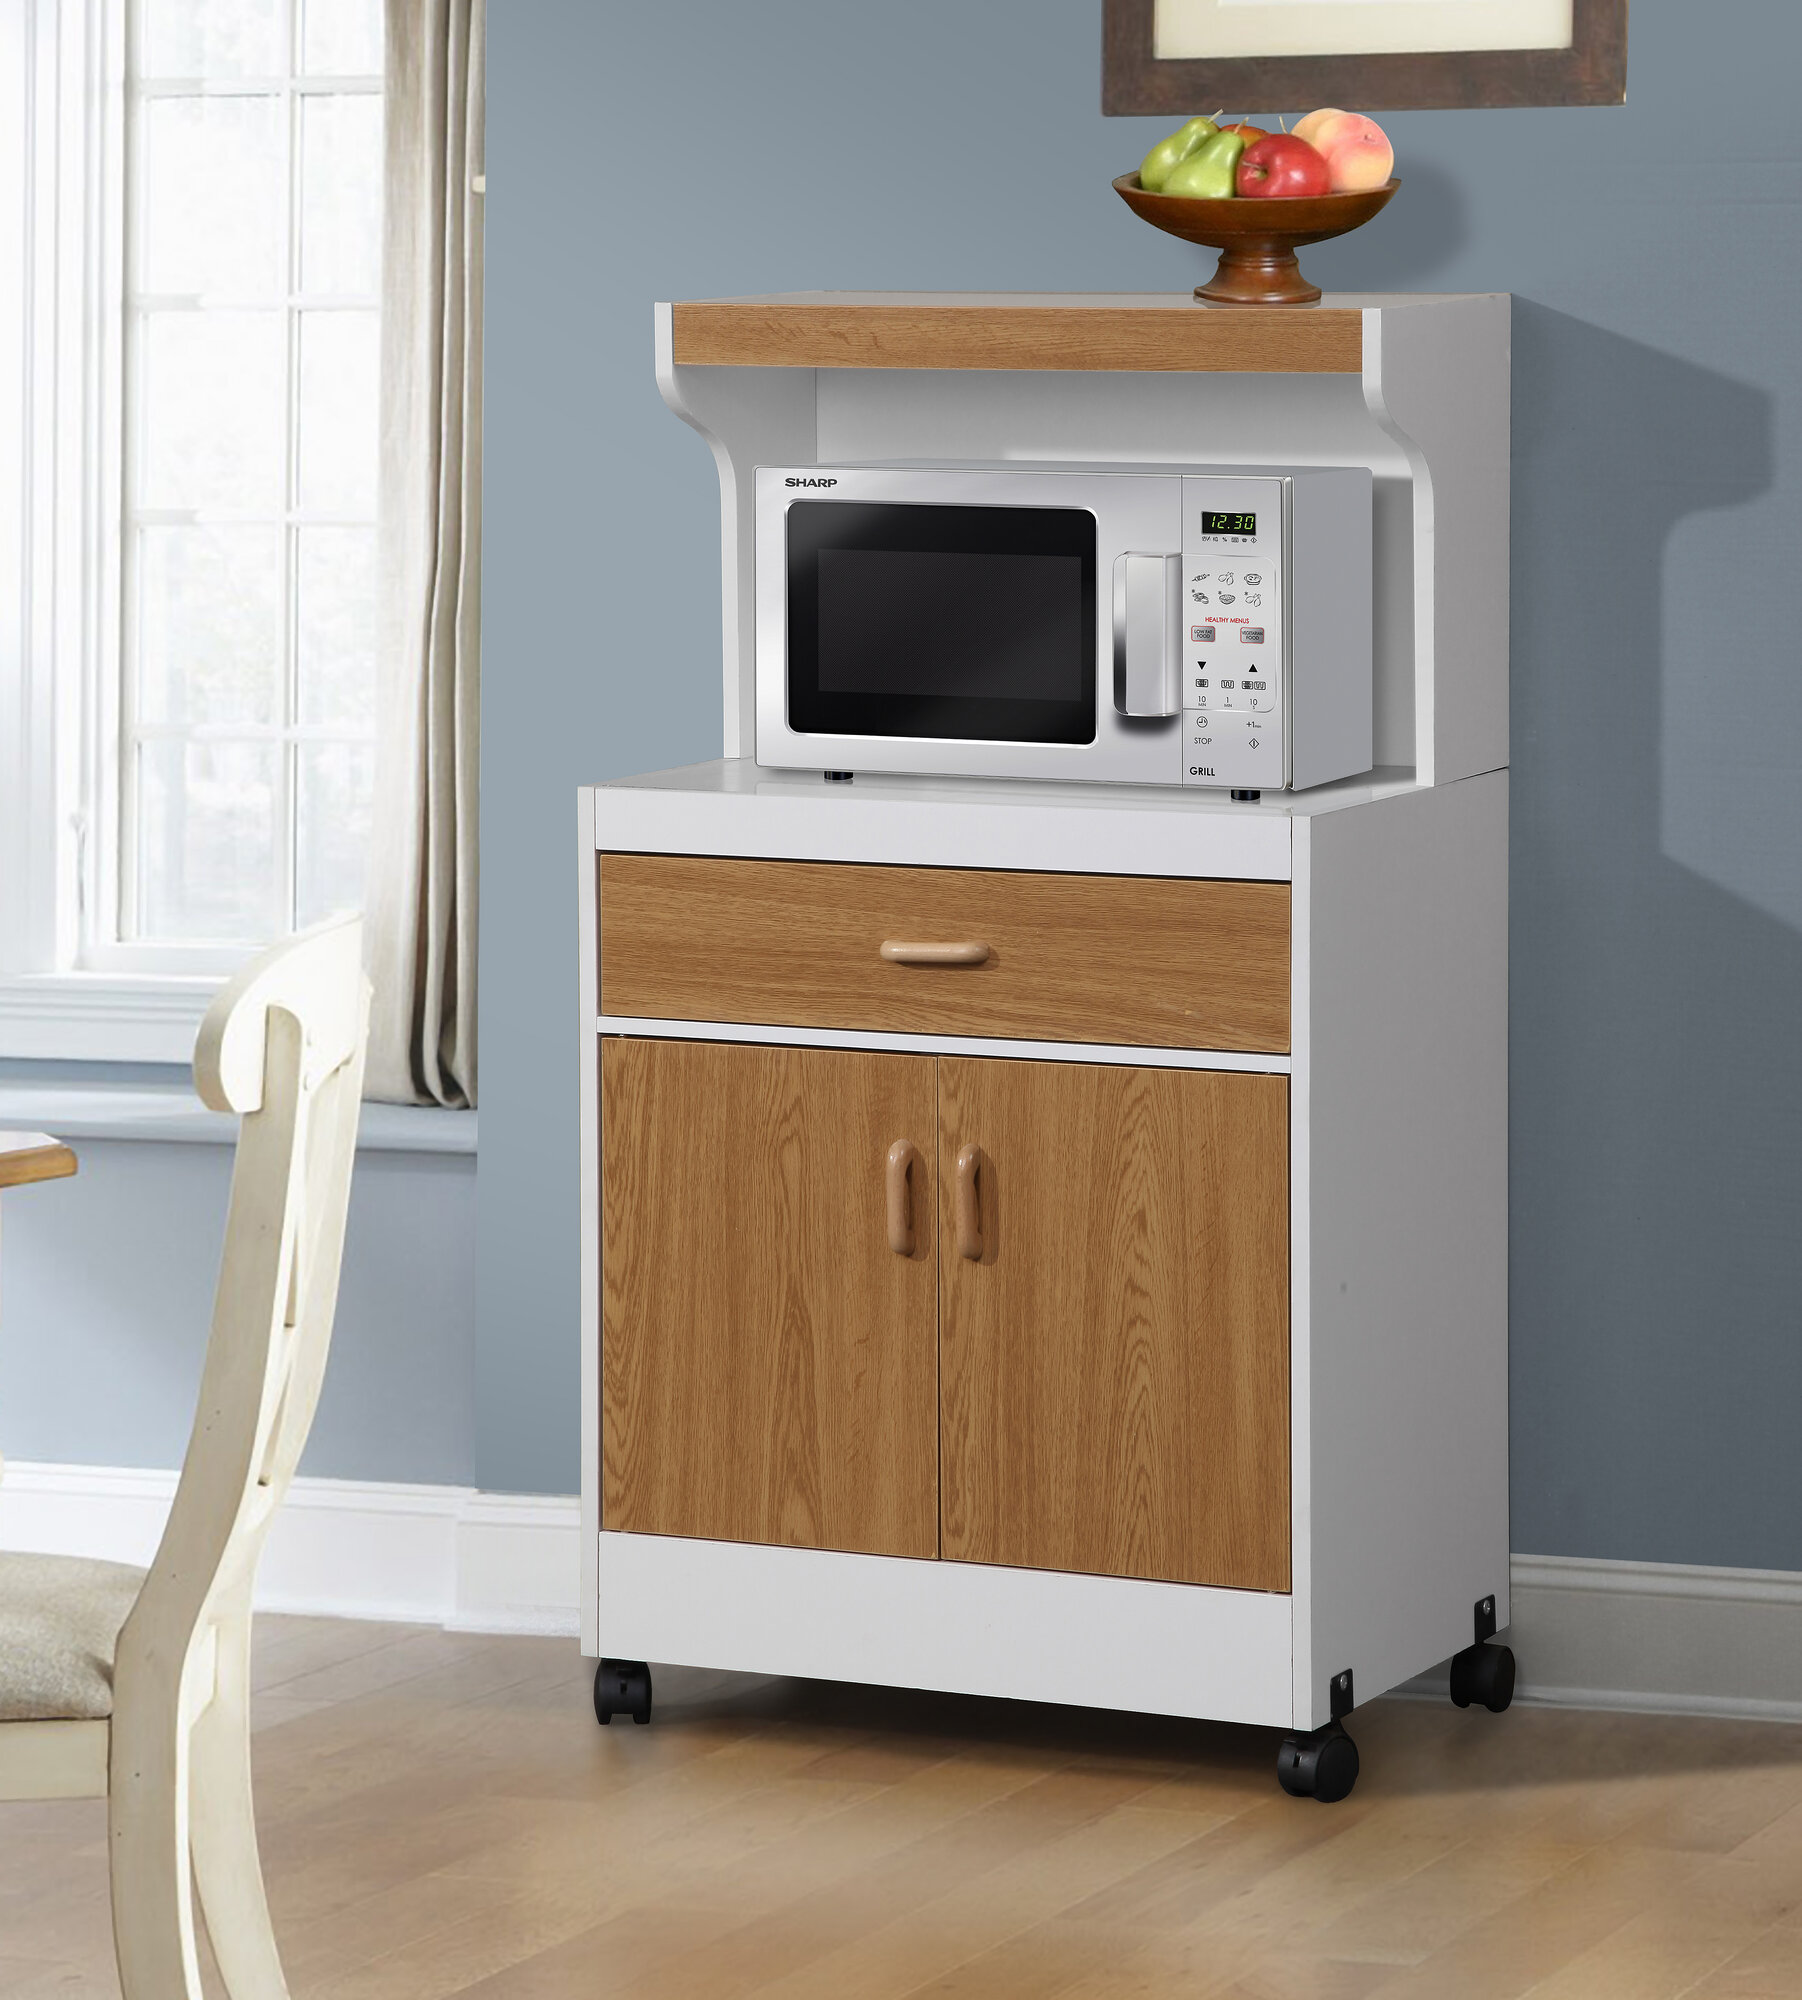 Counter Height Microwave Cart : Details about Hazelwood Home Microwave Cart